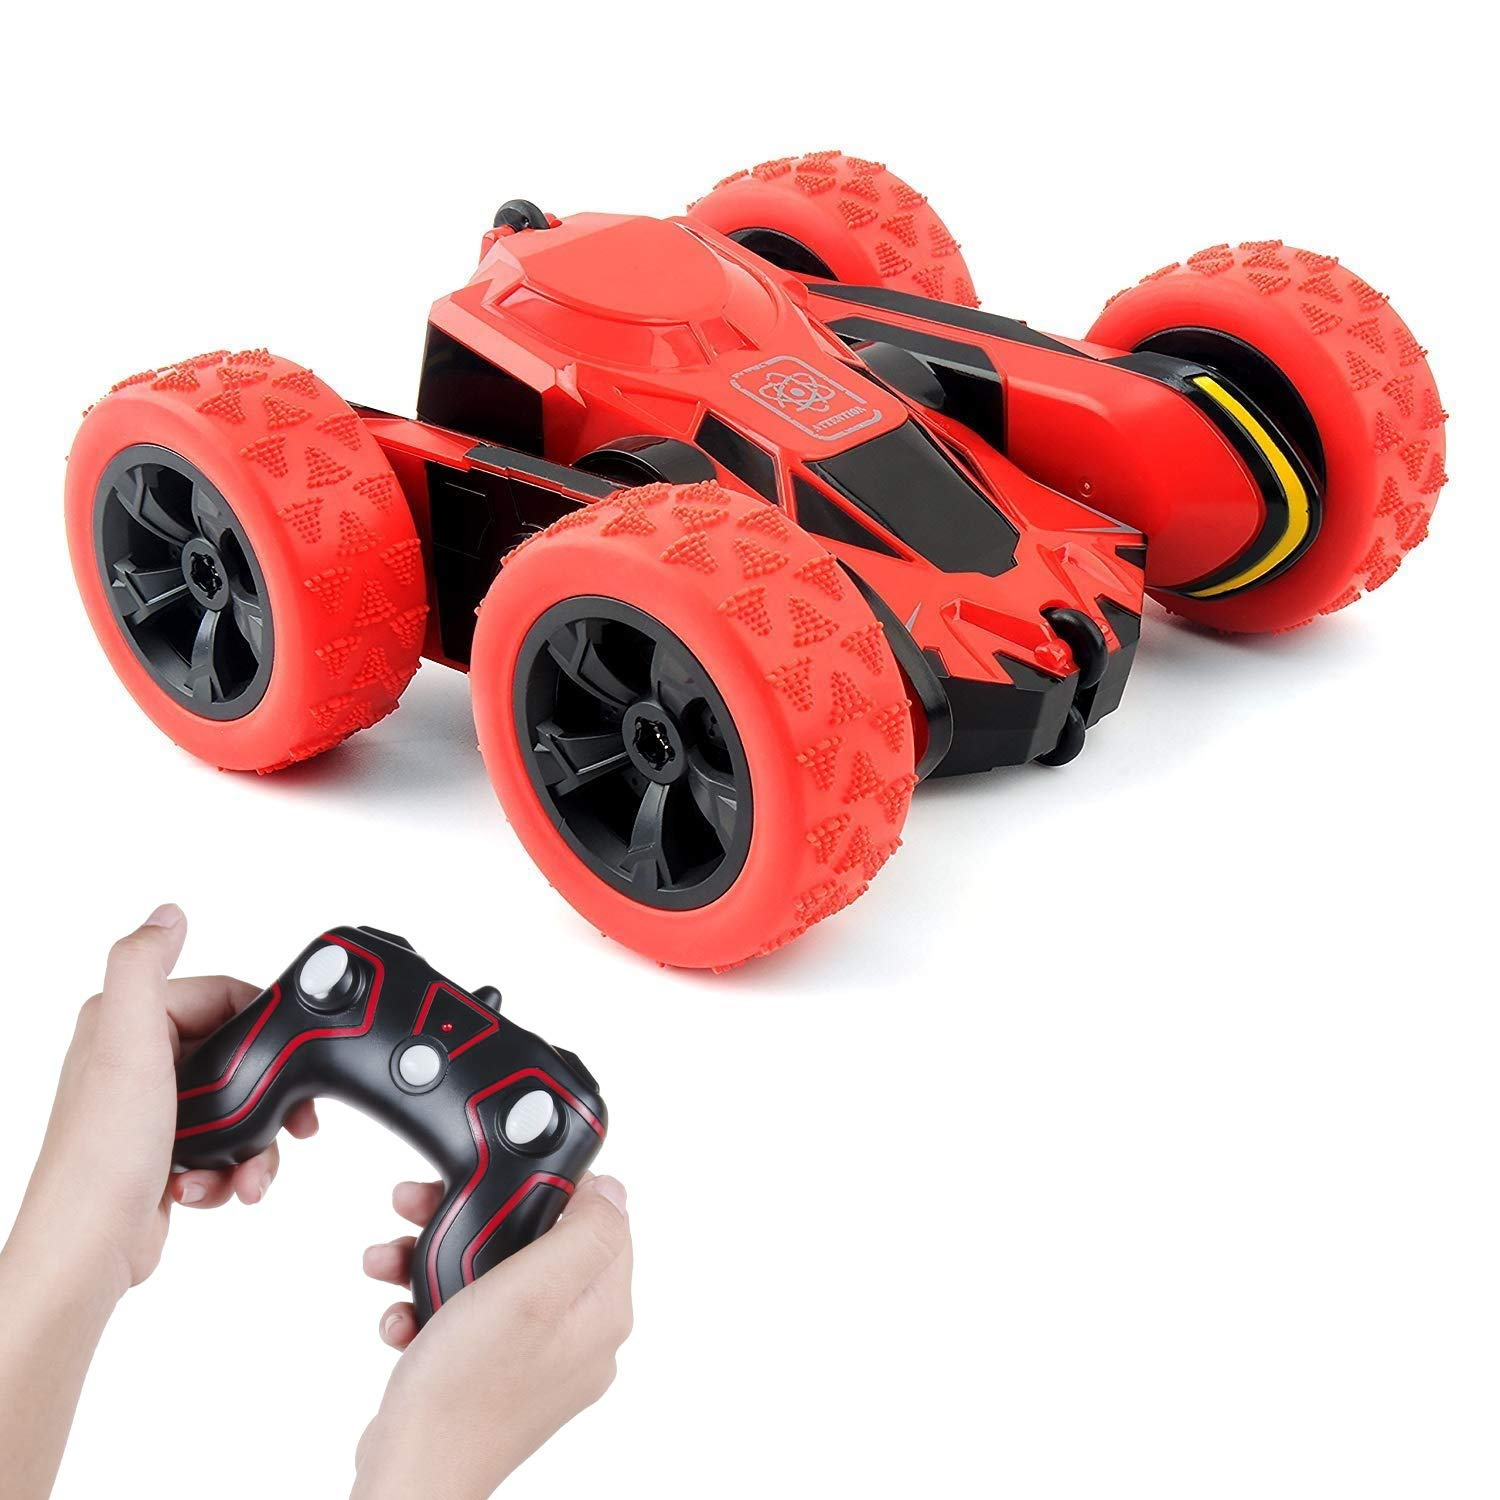 Beyond Remote Control Car RC Cars 1/28 2.4Ghz 360 Degree Rotating Scale RC Stunt Car Toy Vehicles for Kids Child